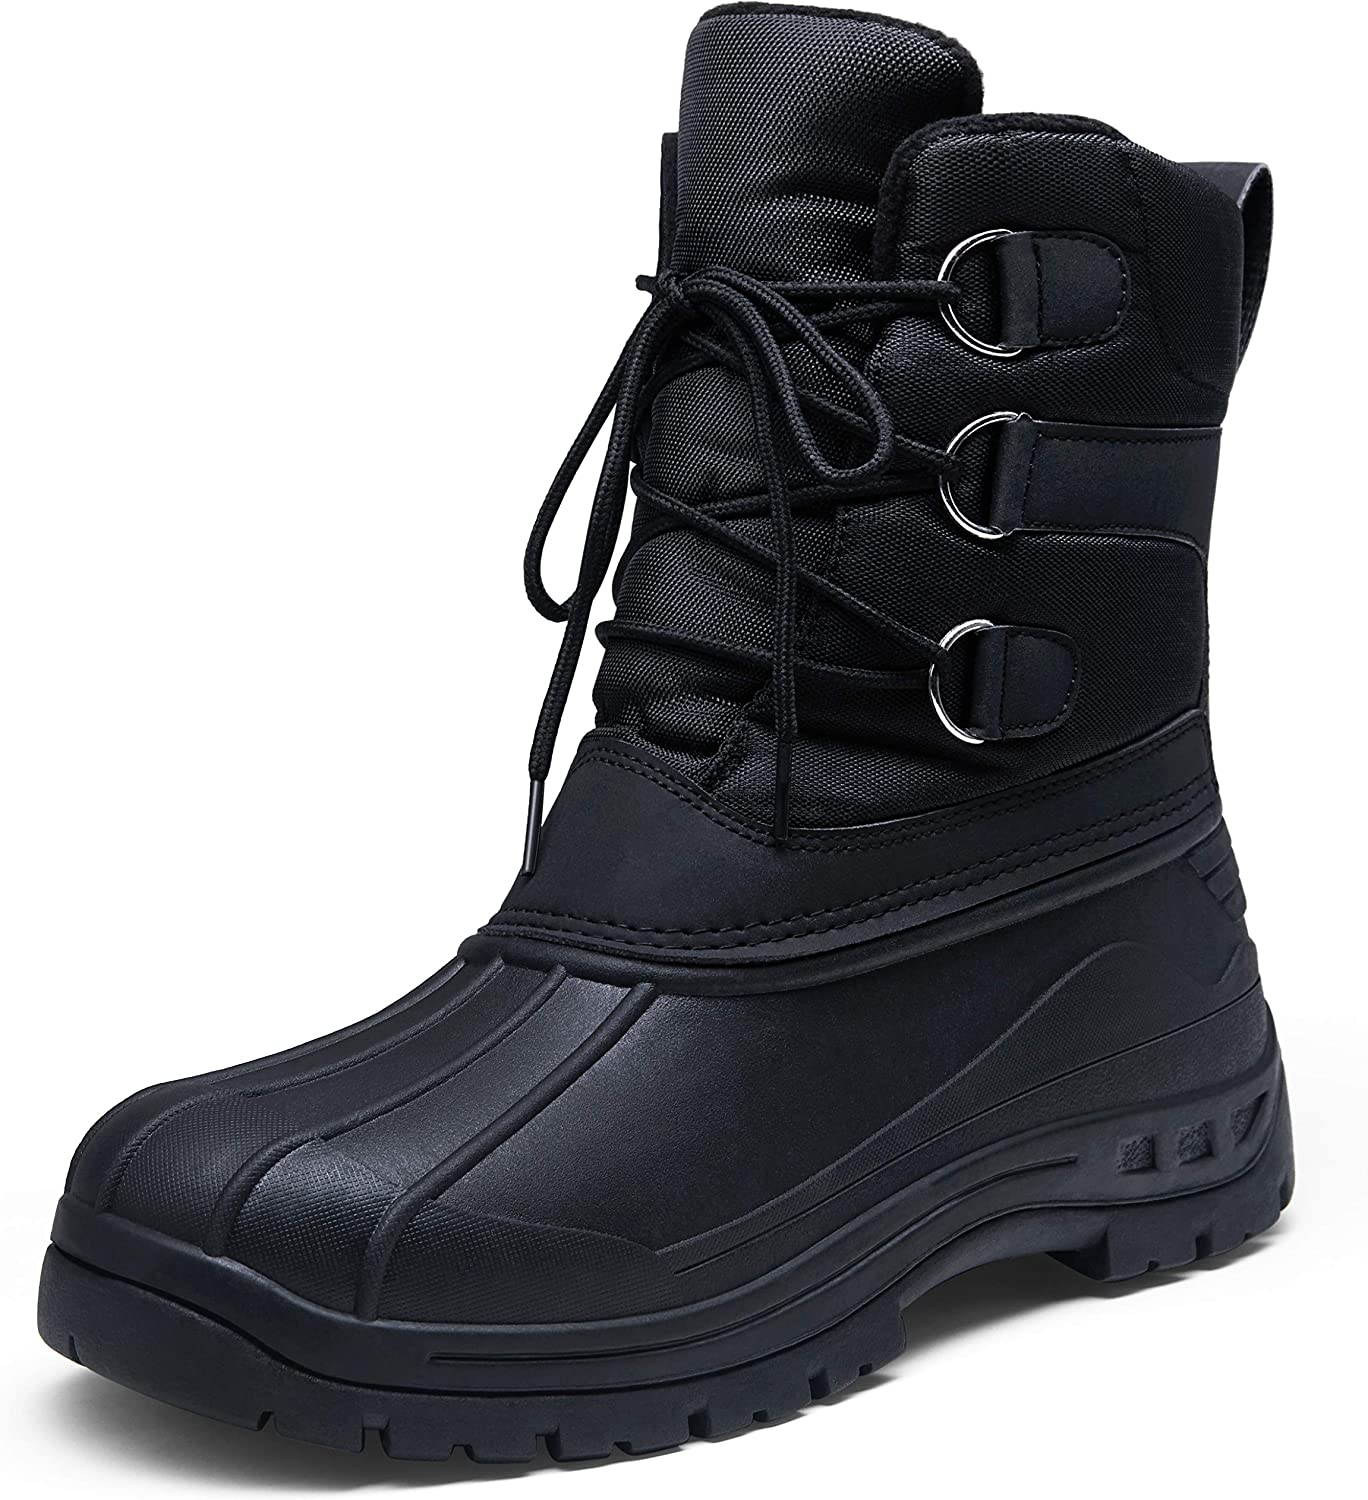 JOUSEN Mens Winter Boots Lightweight Waterproof Snow Boots for Men Cold Weather Warm Mens Boots